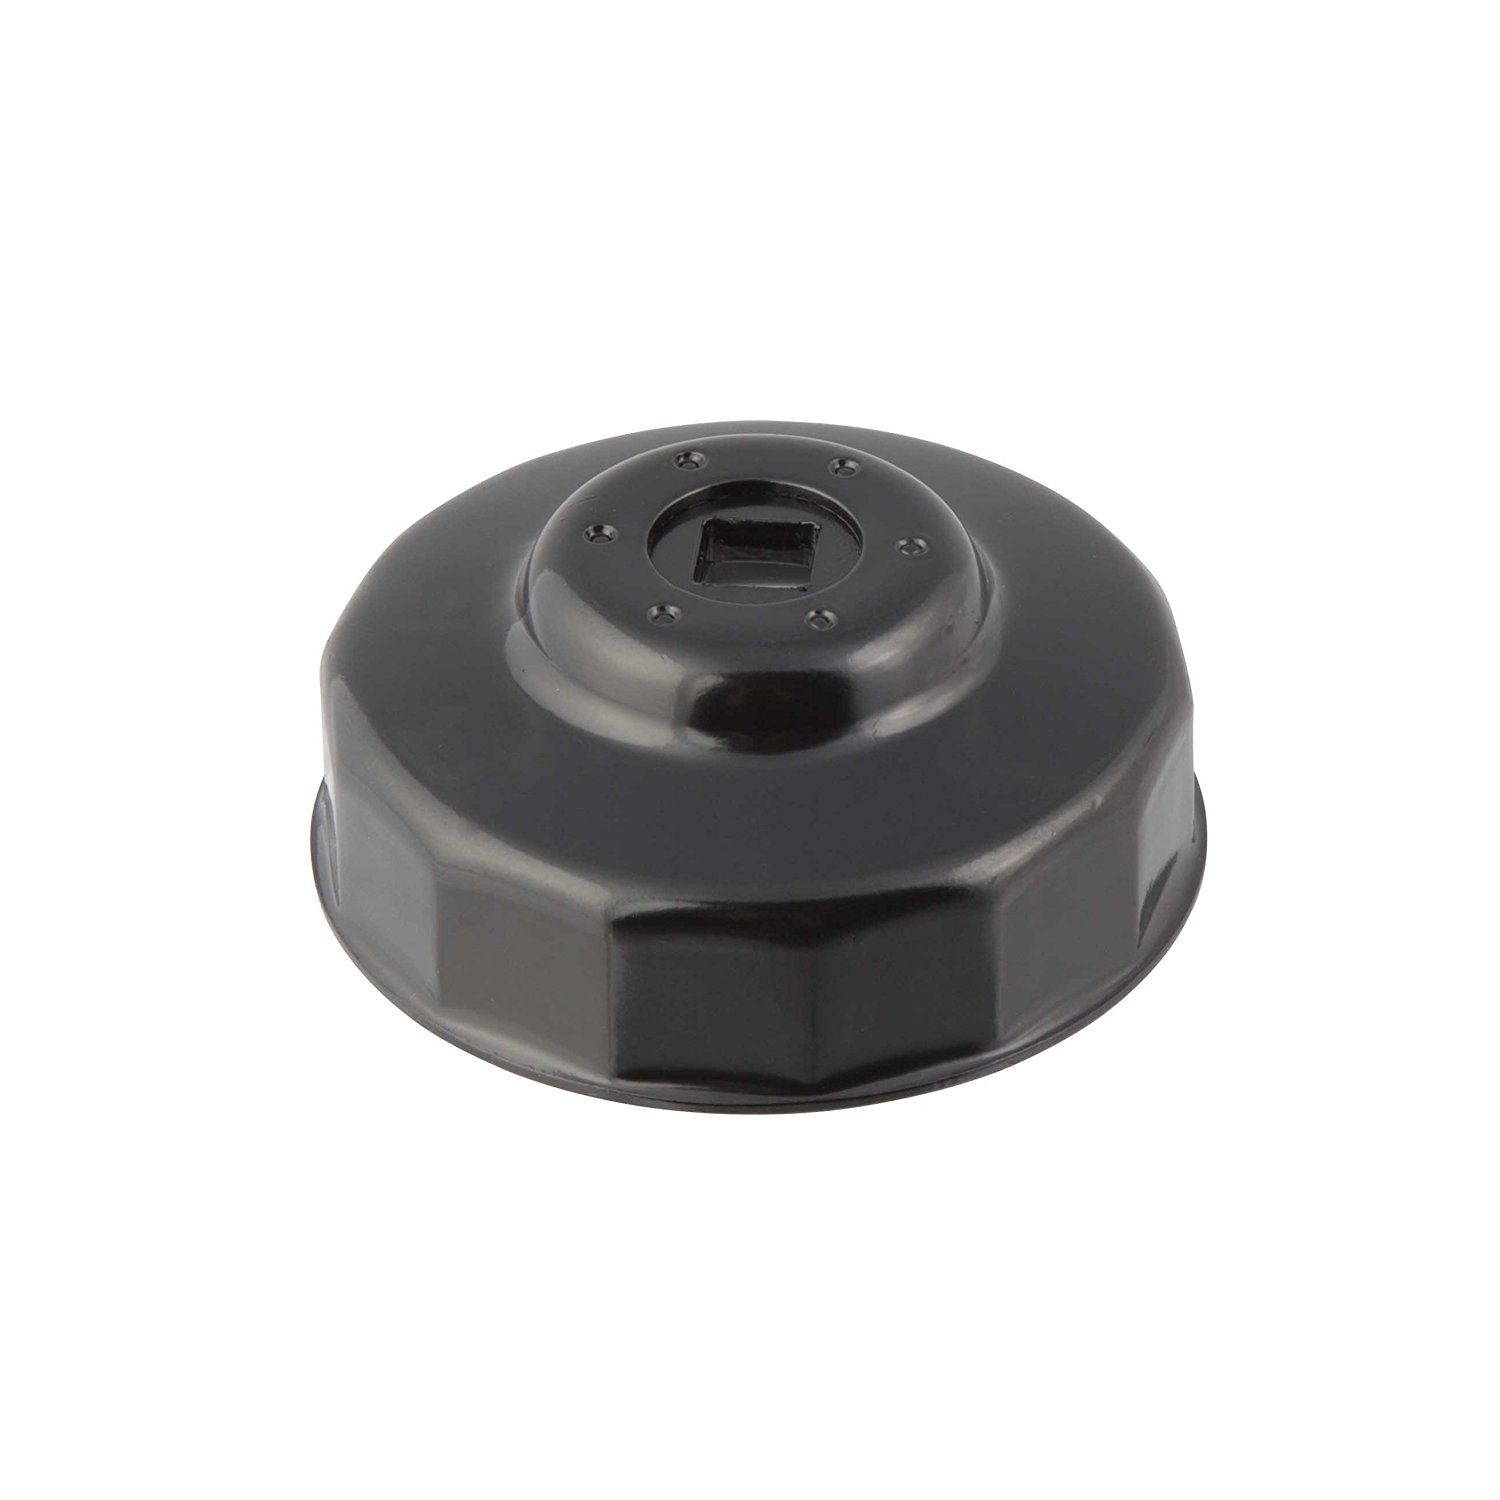 86mm Oil Filter Wrench